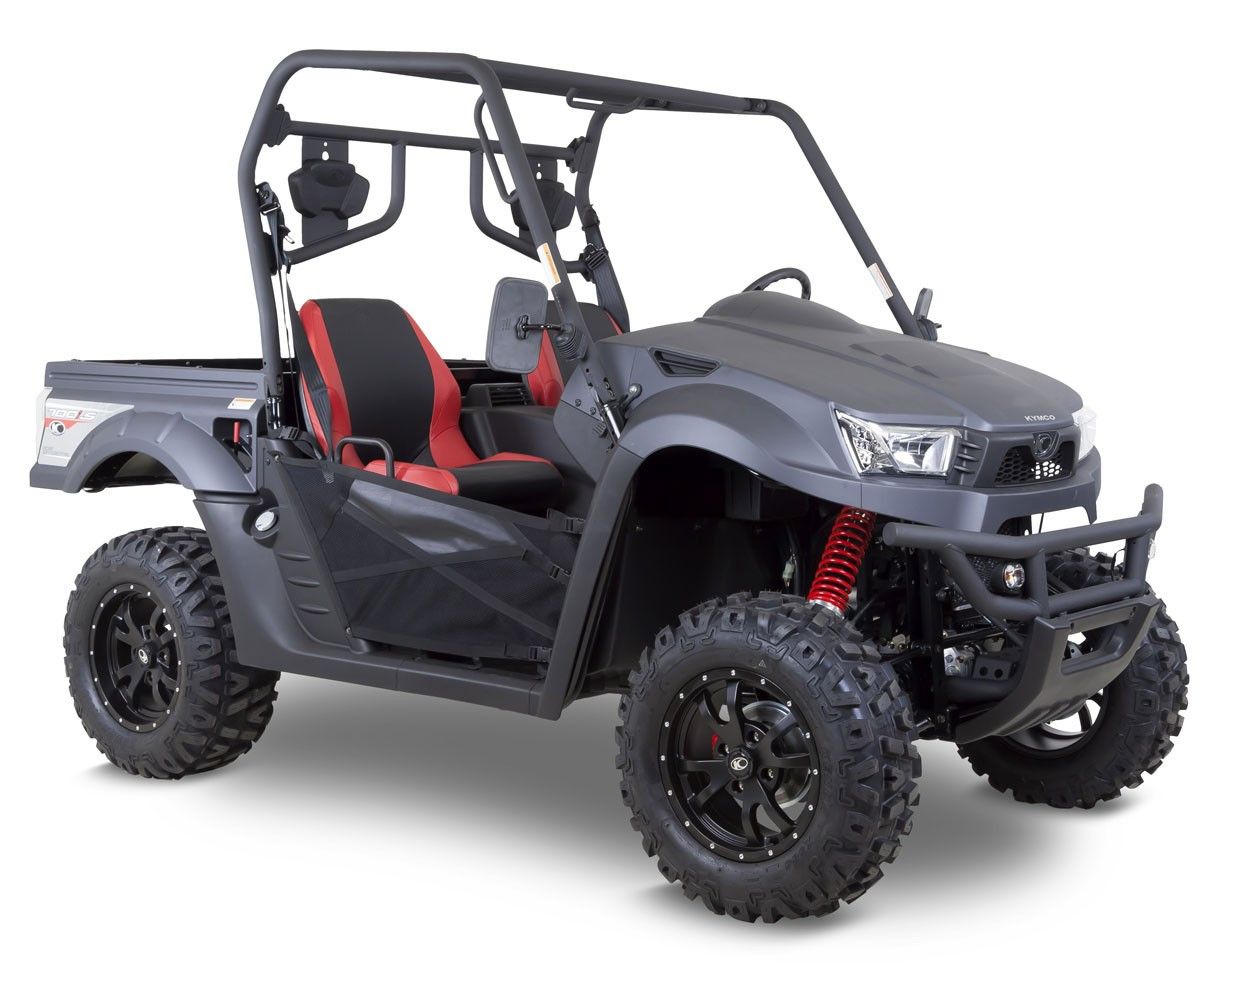 quad kymco 700 direction assistee